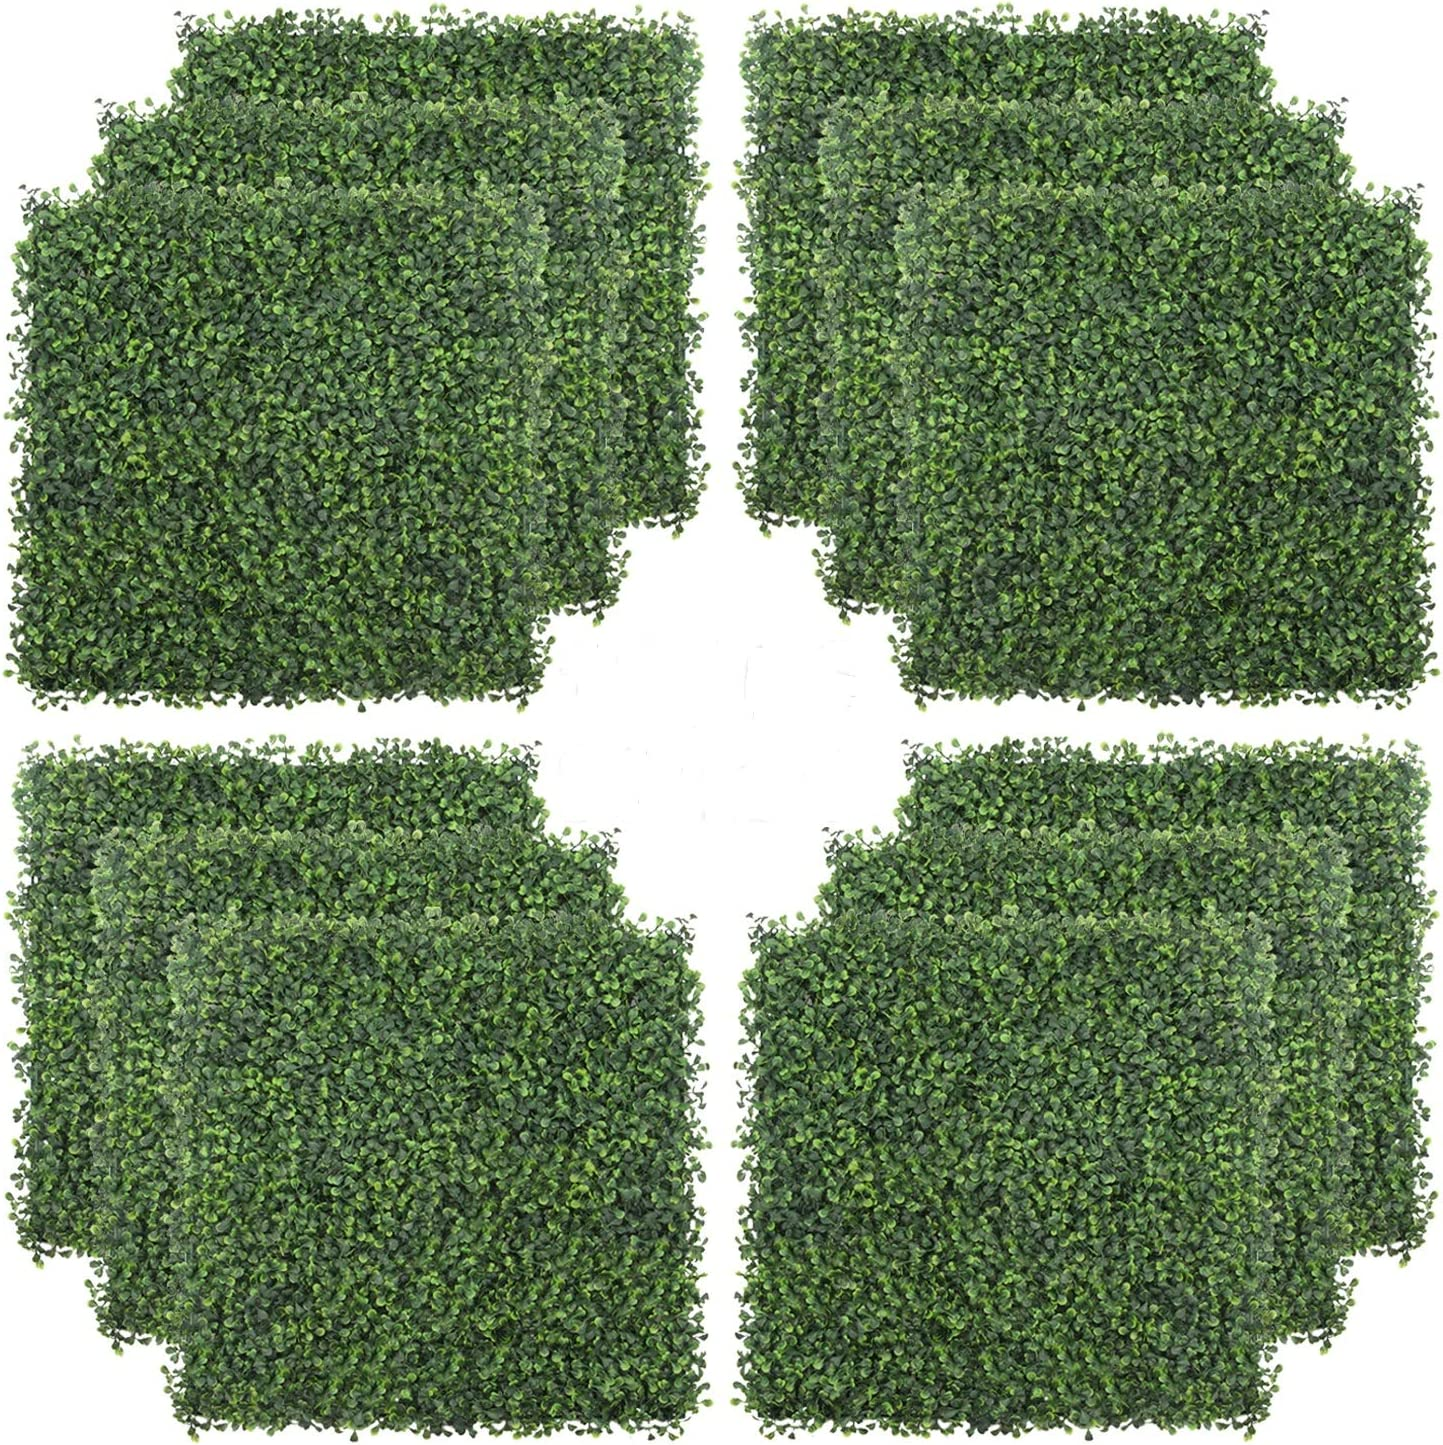 WINWEND 12PCS Grass Wall Backdrop Boxwood Hedge Wall Panels 20 x 20inch Artificial Green Wall Boxwood Panels for Outdoor Garden Backyard Fence Indoor Green Wall Decor